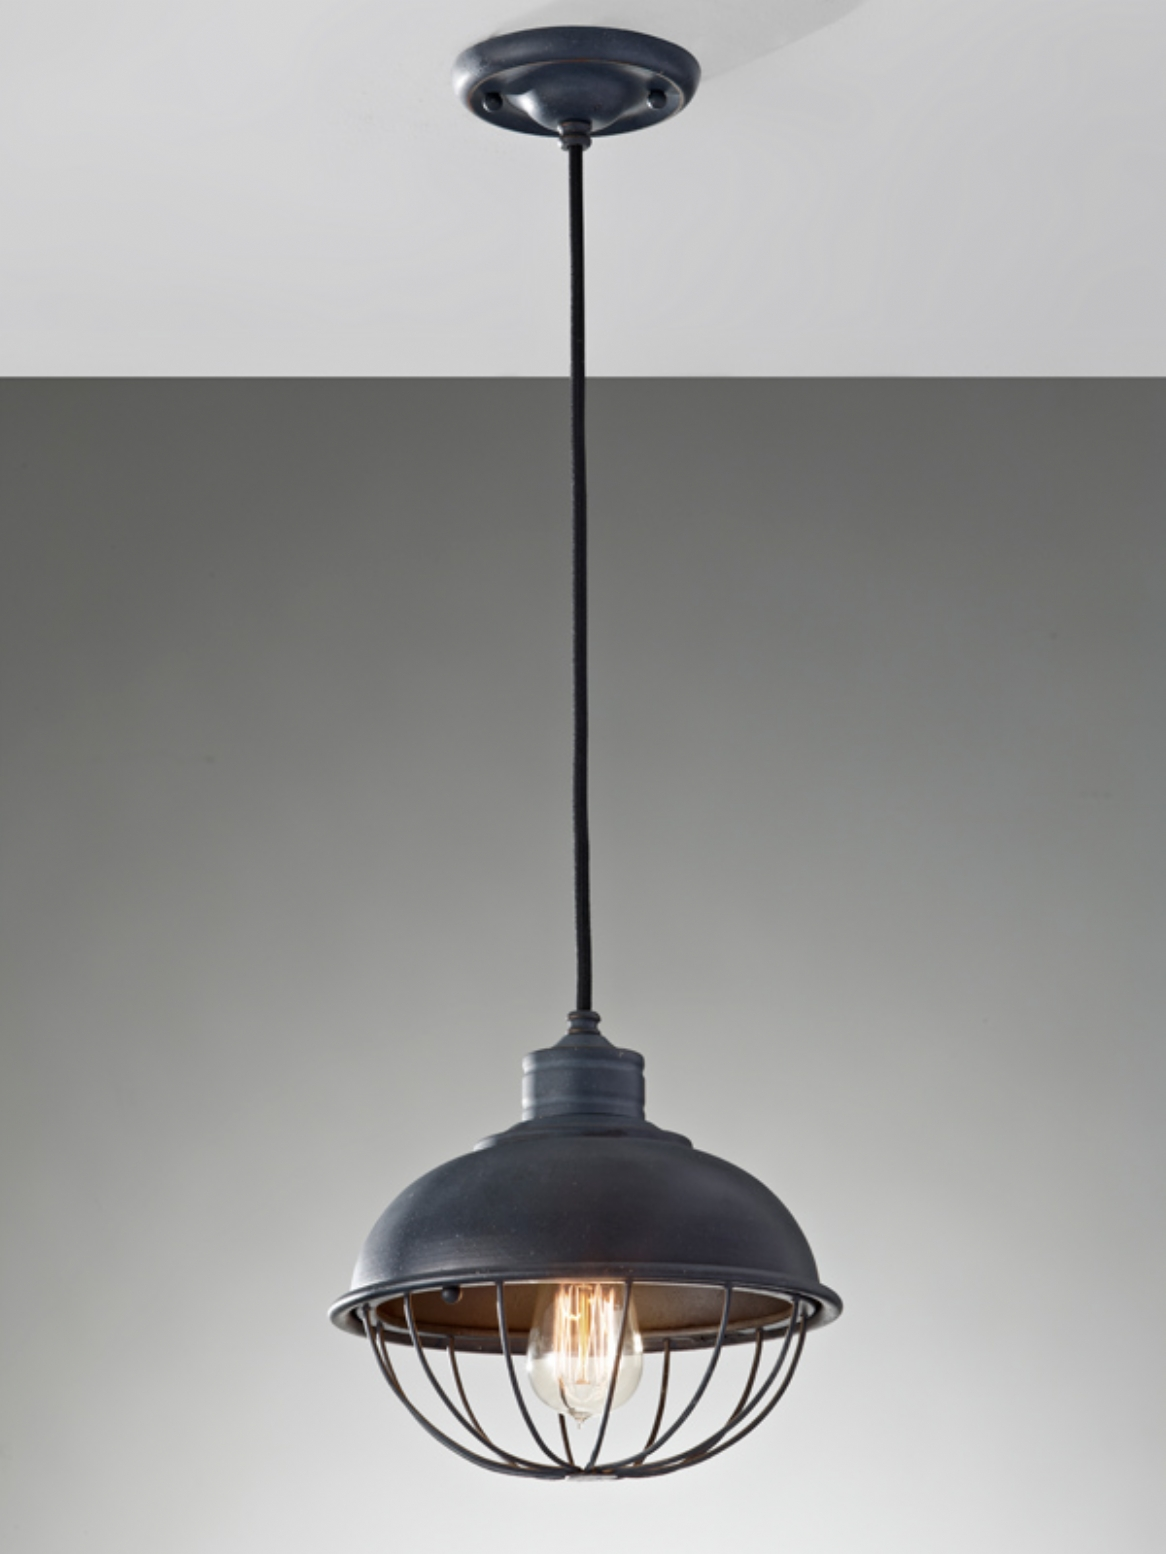 TOP 10 Industrial ceiling lights of 2018